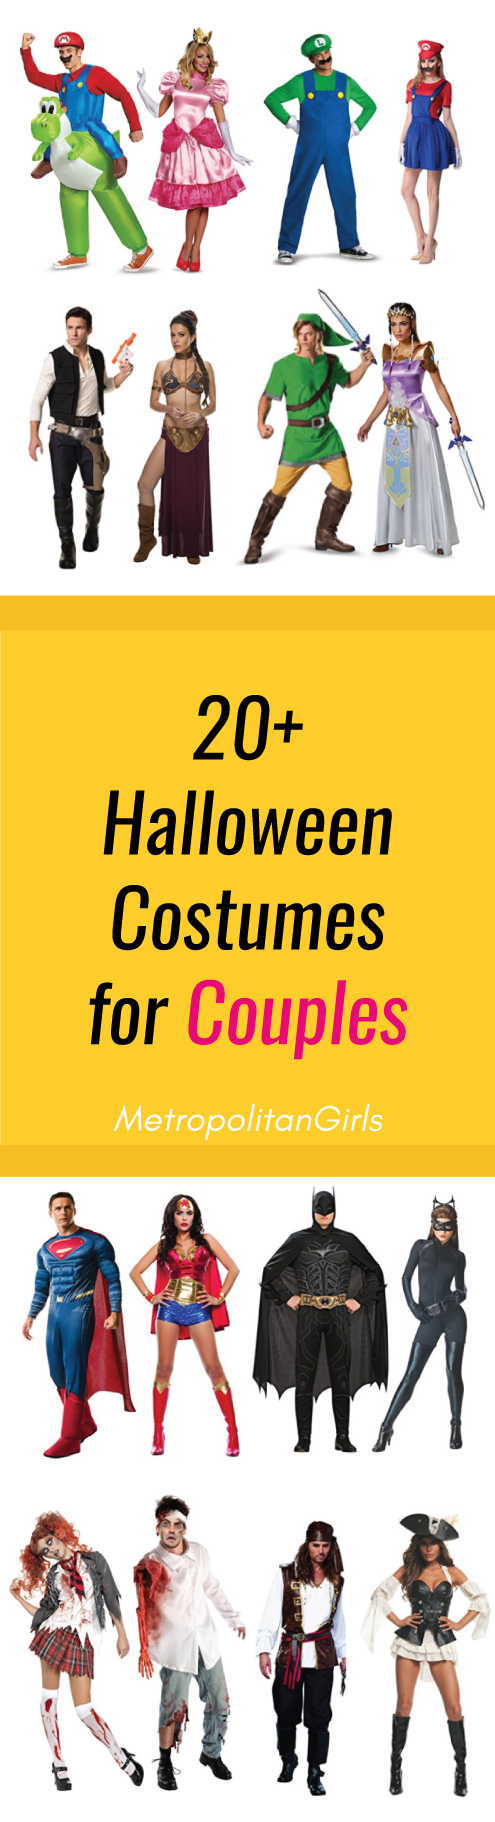 20+ Halloween Couple Costume Ideas